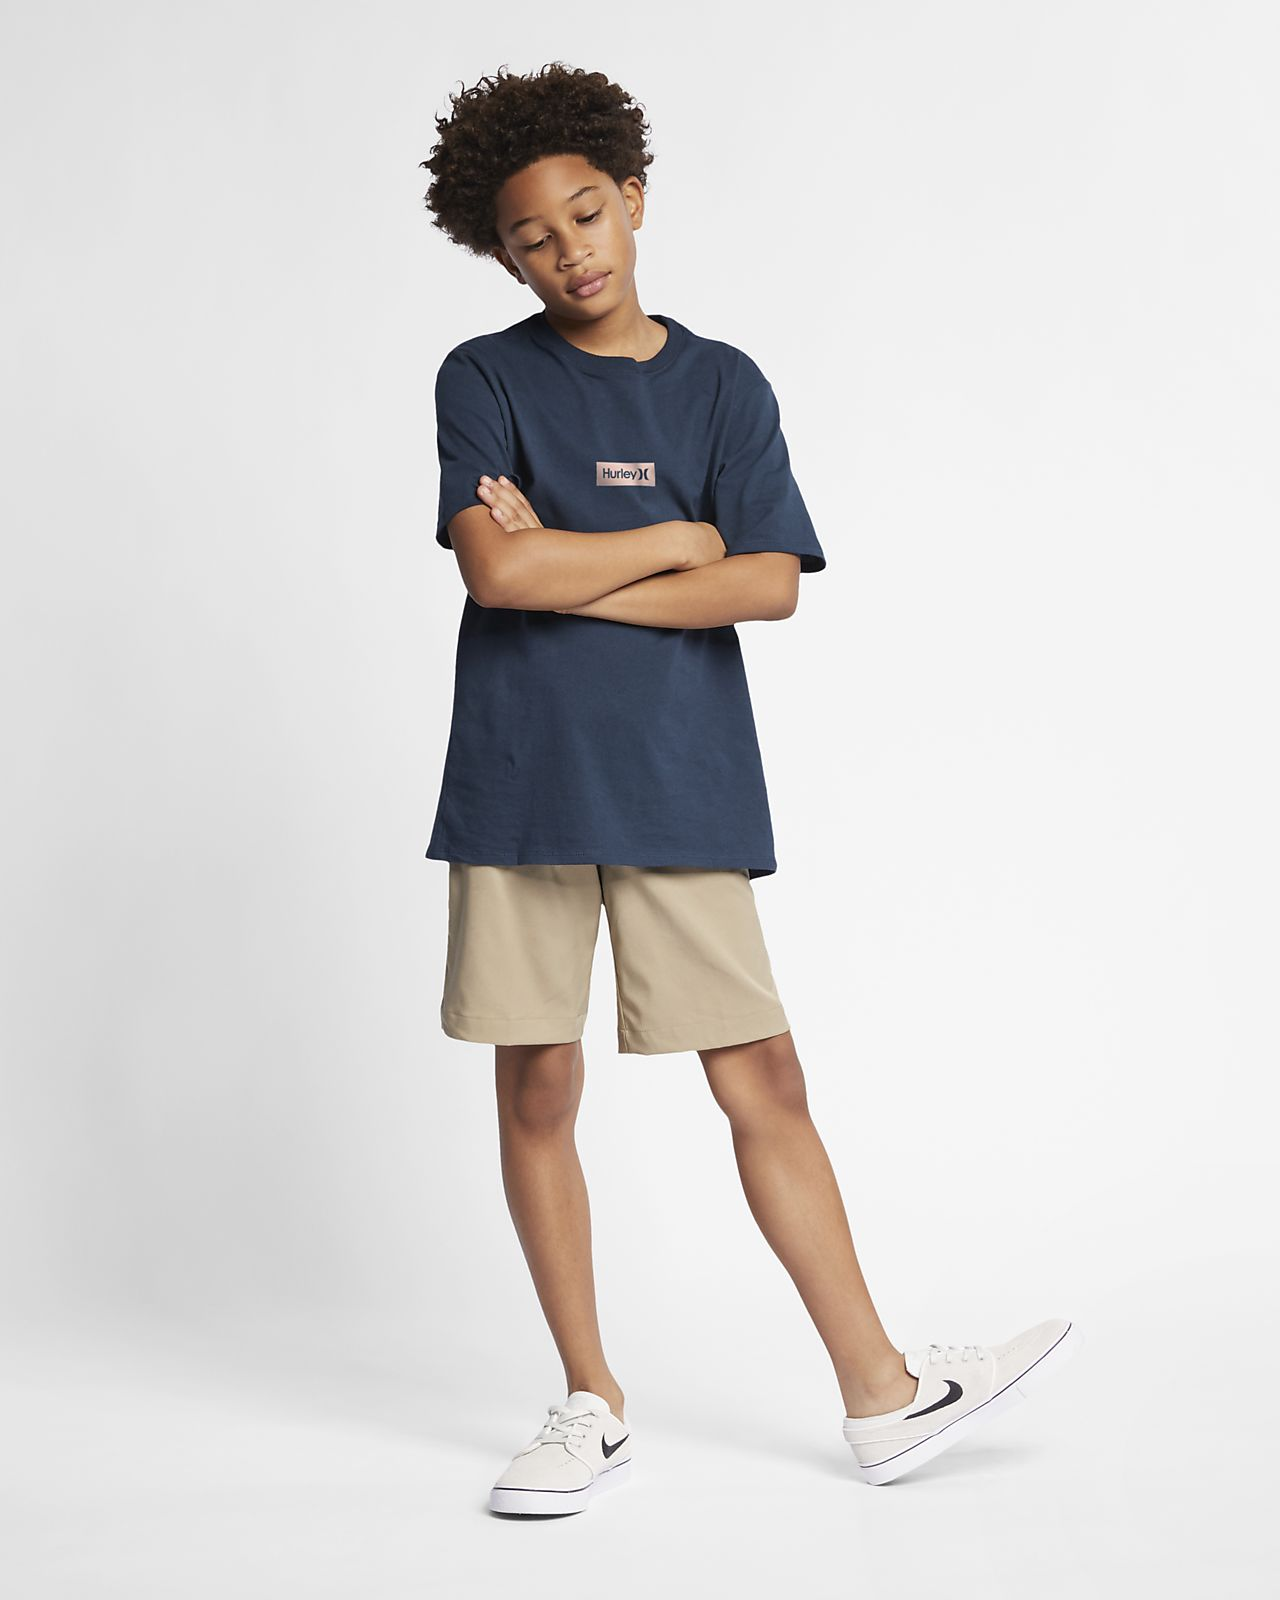 0d42011061c405 Hurley Premium One And Only Small Box Jungen-T-Shirt. Nike.com DE